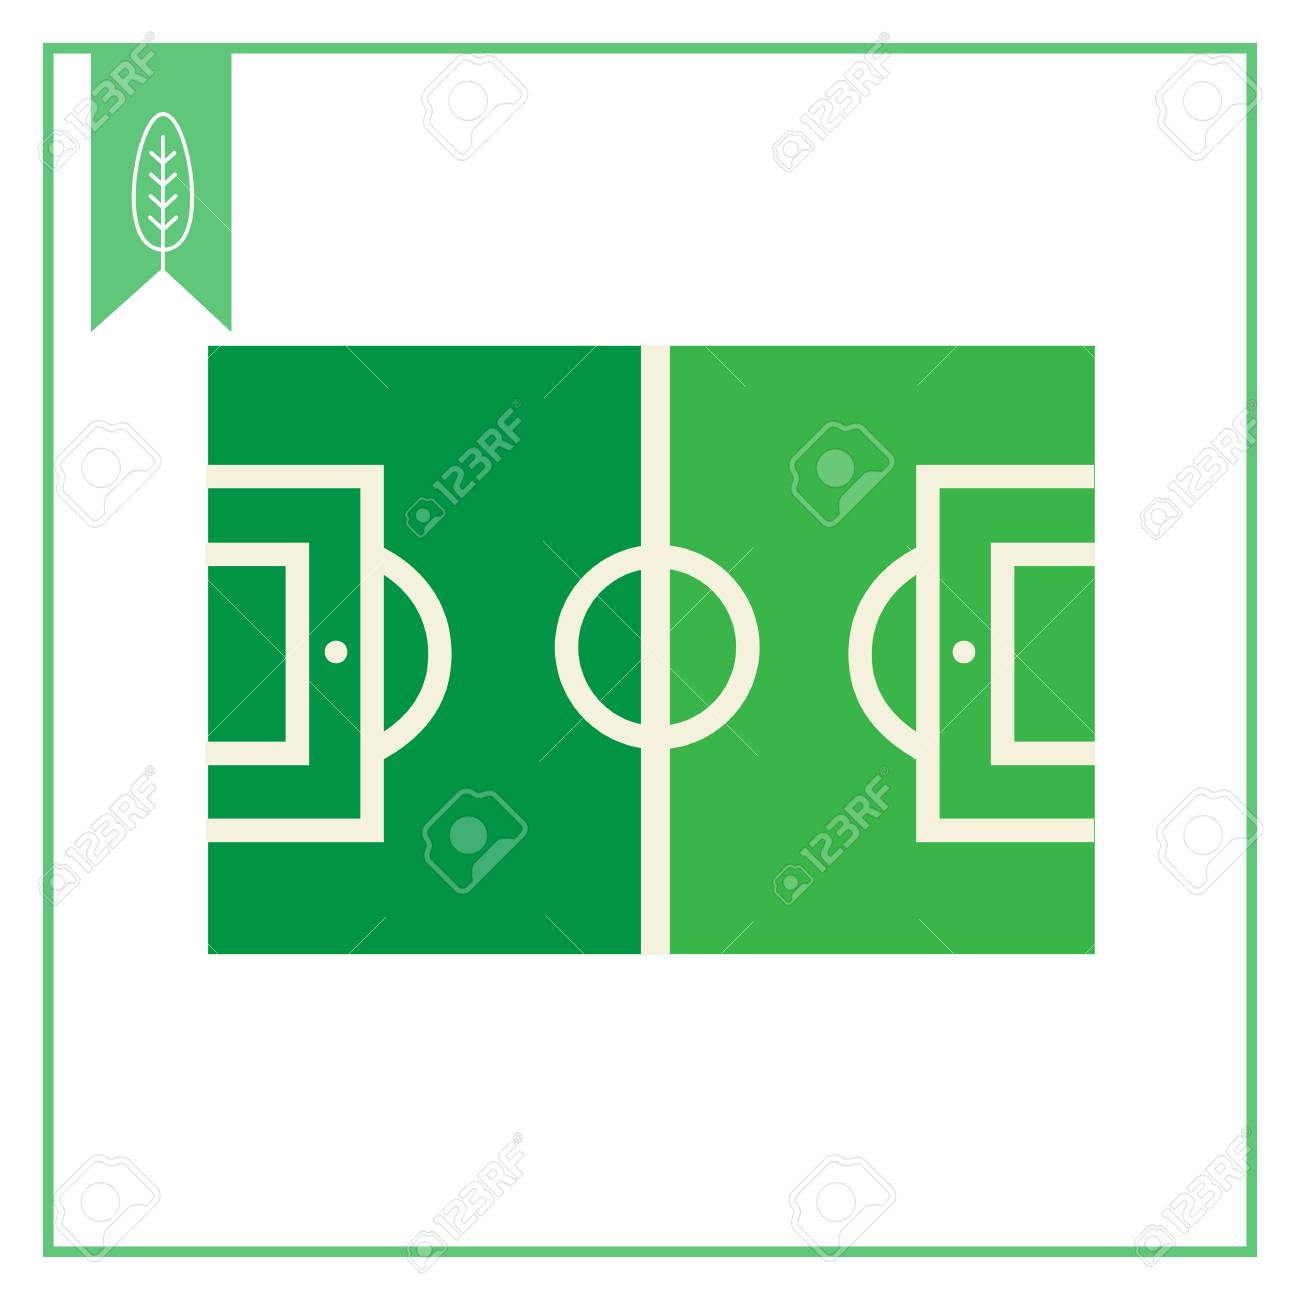 vector icon of green football field with marking royalty free rh 123rf com american football field vector football field vector file